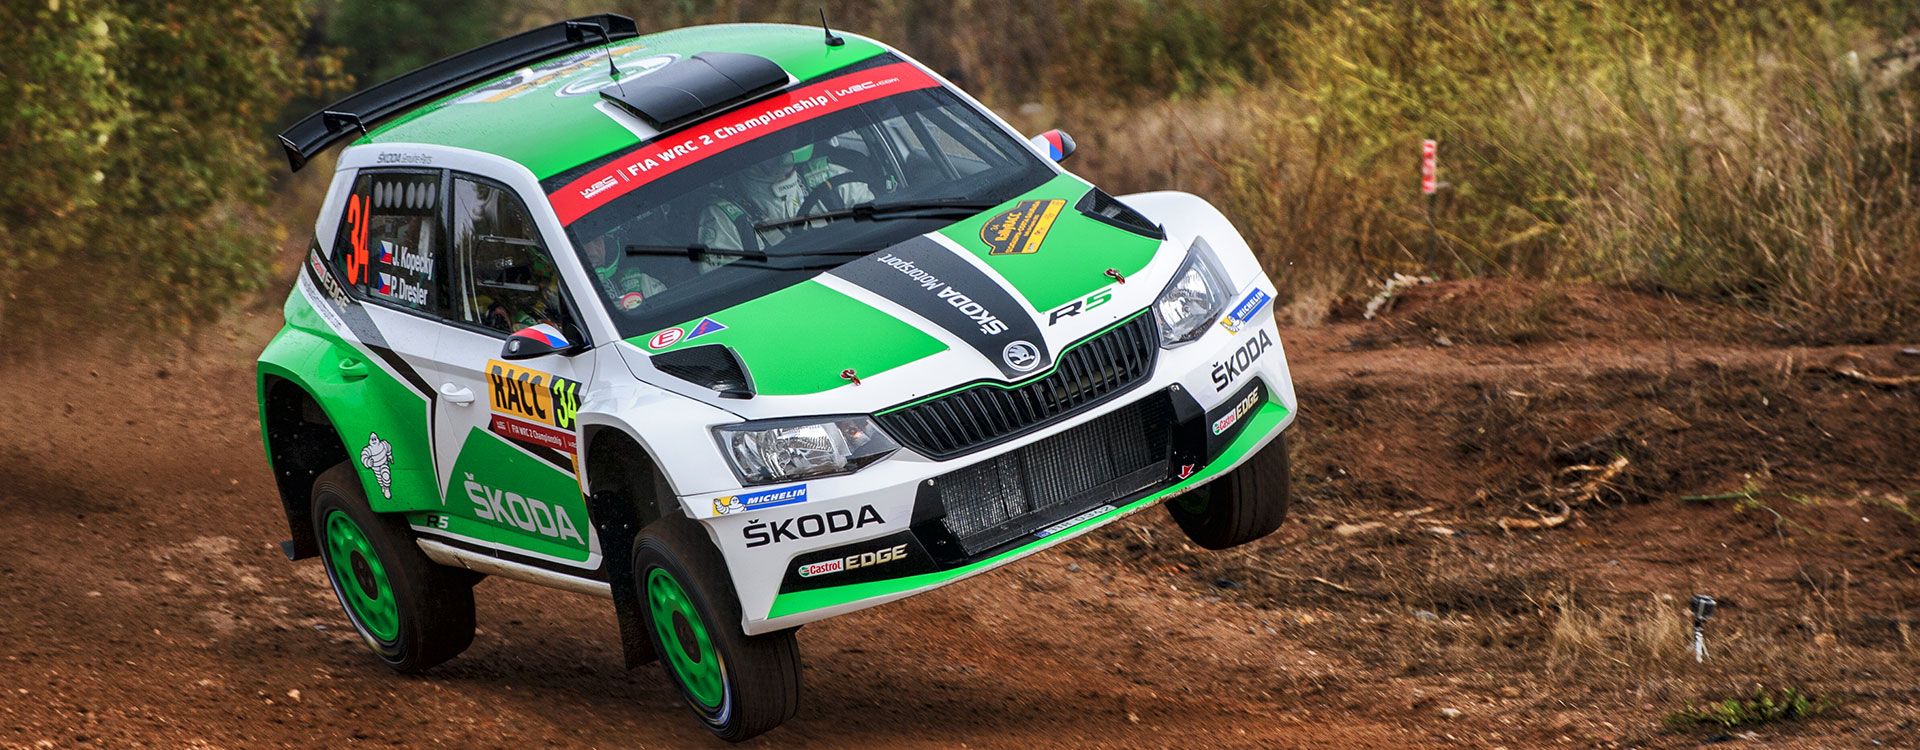 PHOTO: ŠKODA Motorsport at the RallyRACC Catalunya – Costa Daurada 2016